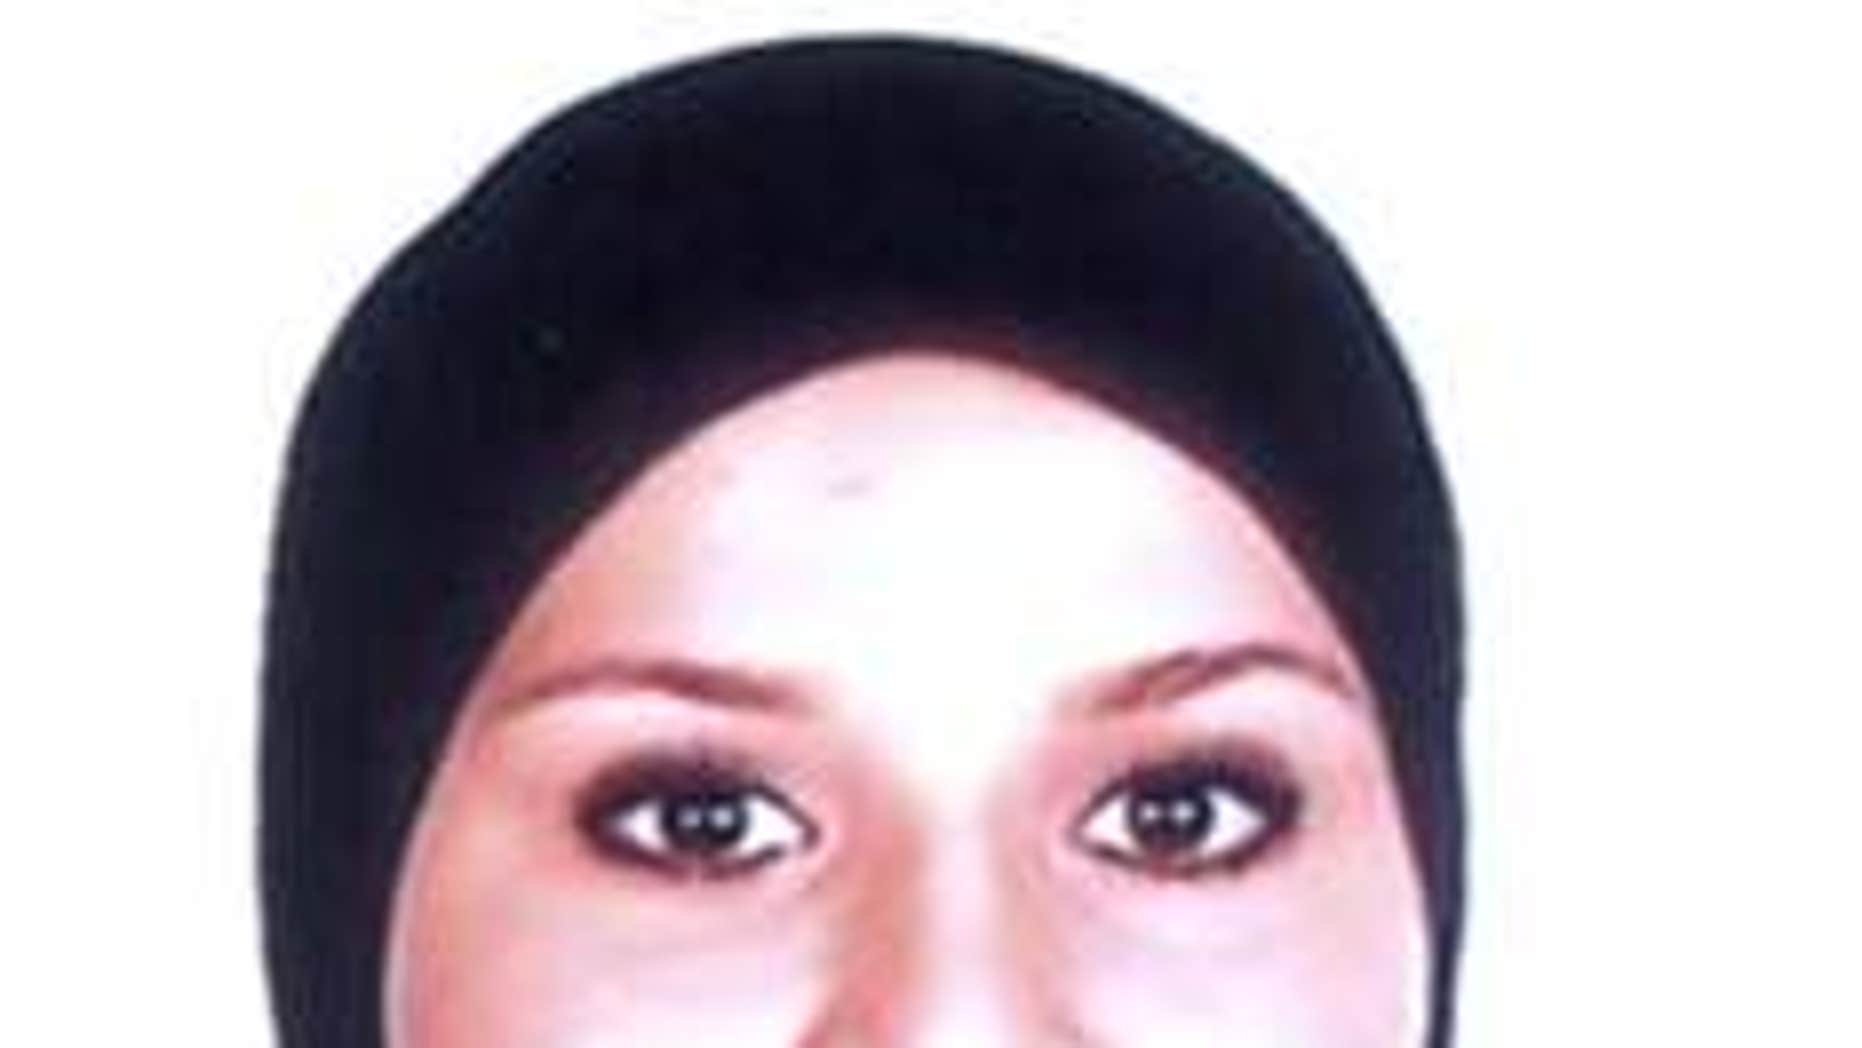 A photo of Fauzia Allal Mohamed, 19, one of the two teenage girls detained in Spain on suspicion of attempting to the join the Islamic State.